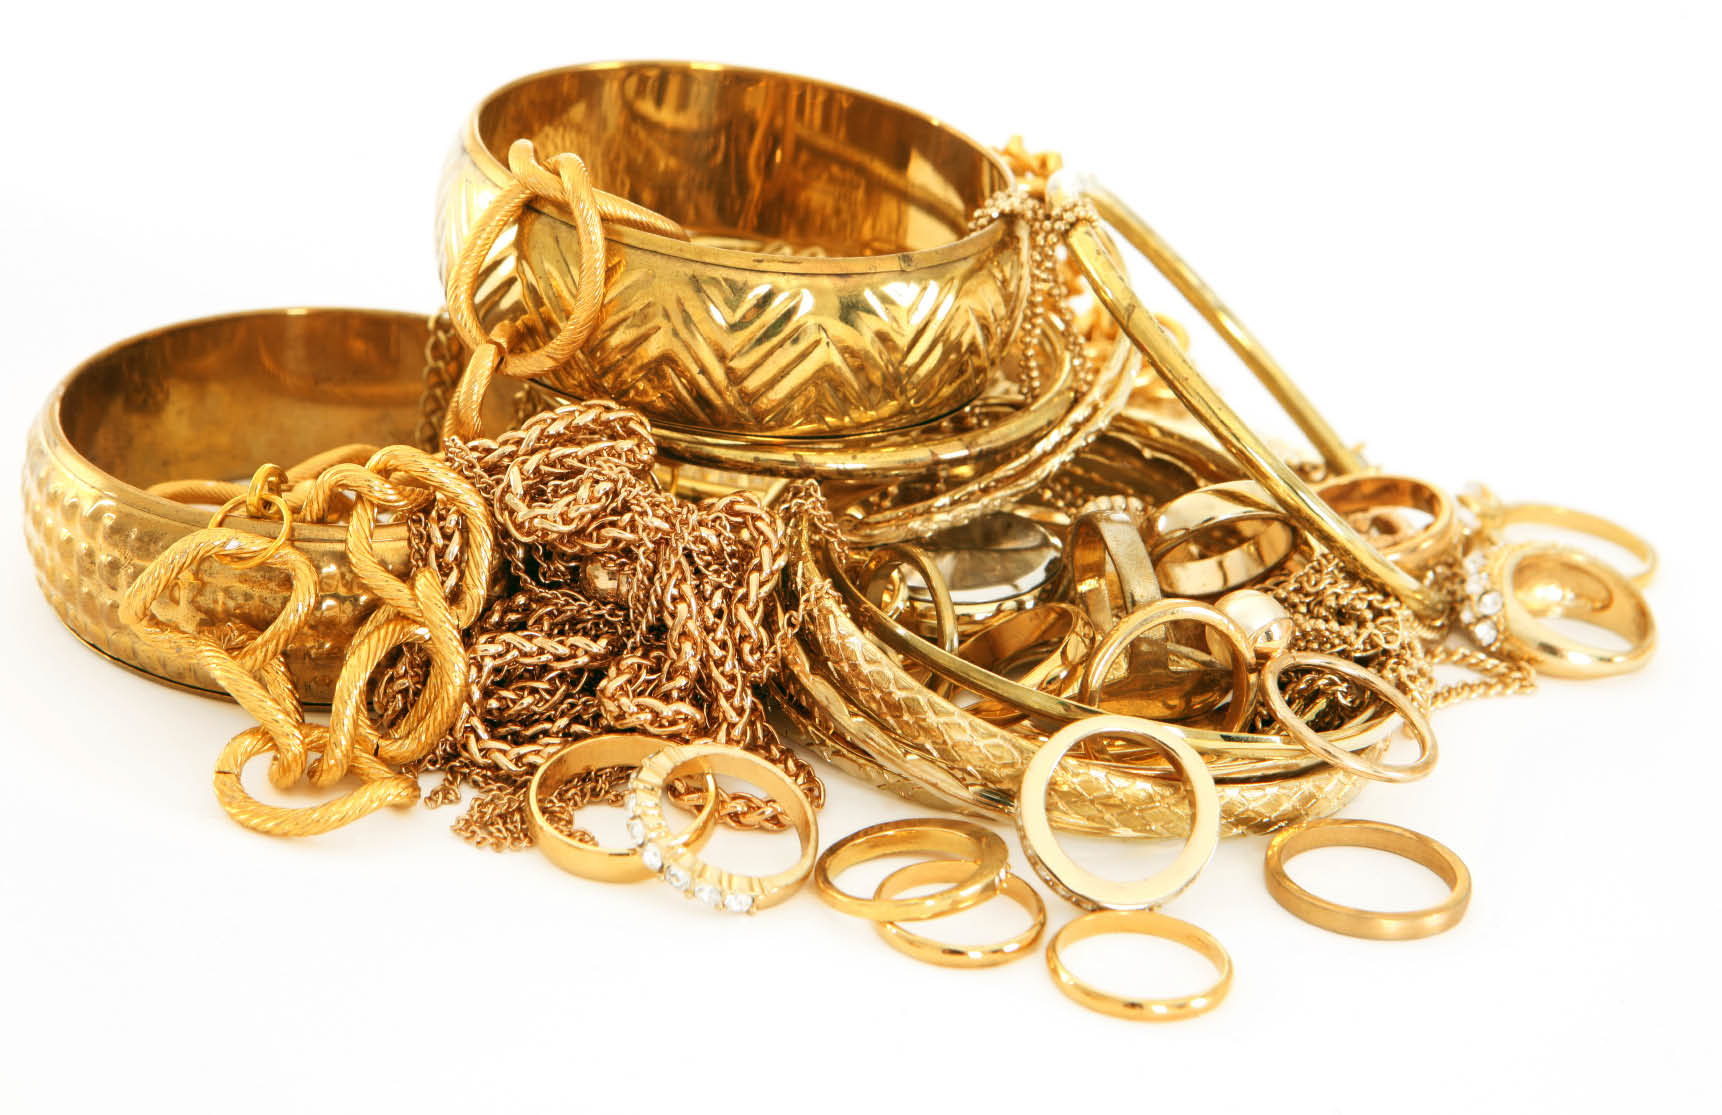 Derzon Coins and Jewelry near Greenfield sells used and new Jewelry